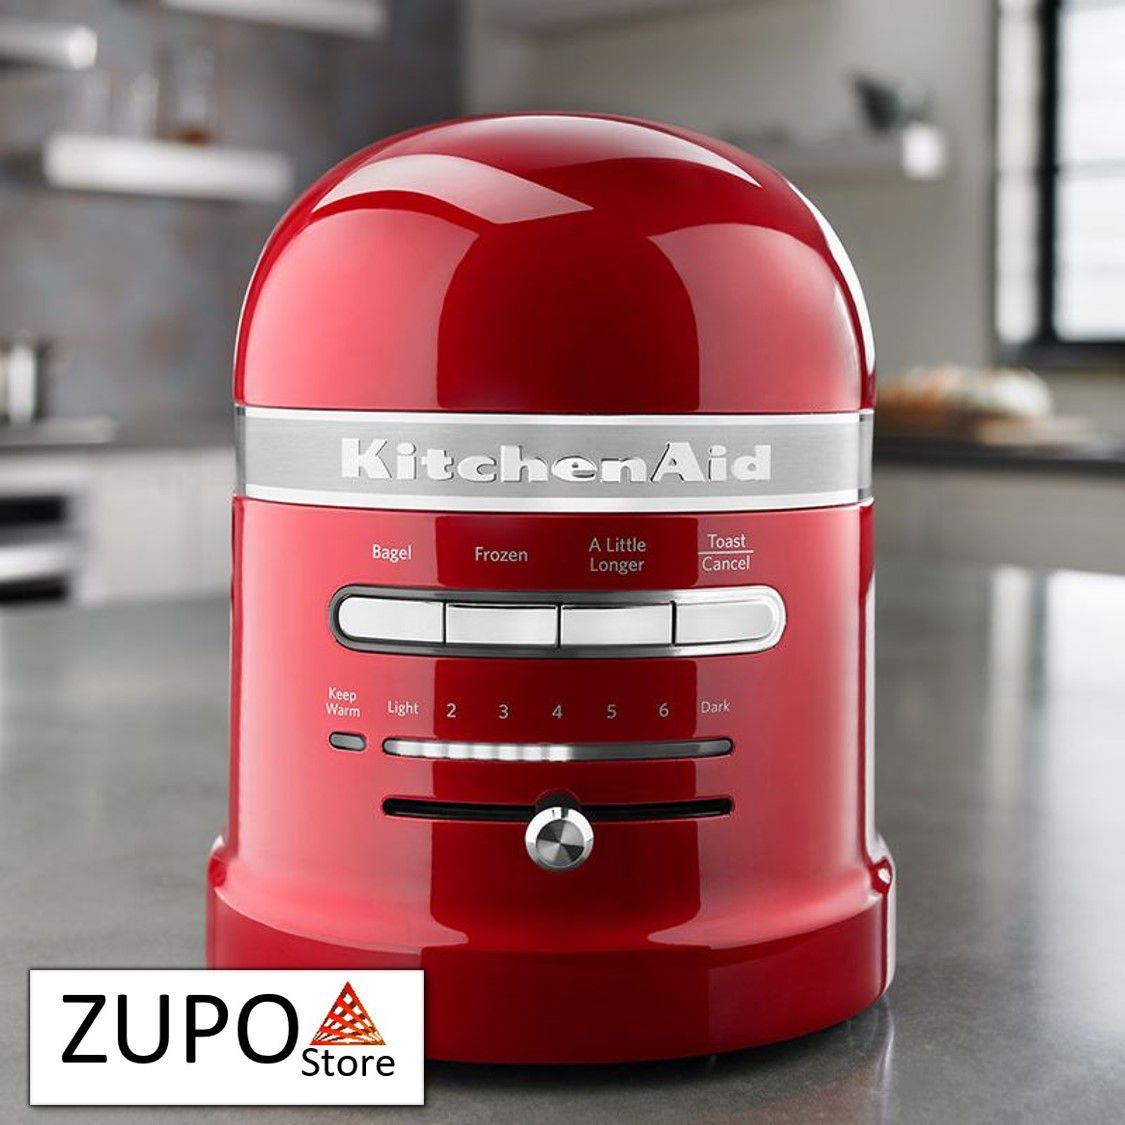 Torradeira 2 Fatias Automática Proline Candy Apple KitchenAid - 127V